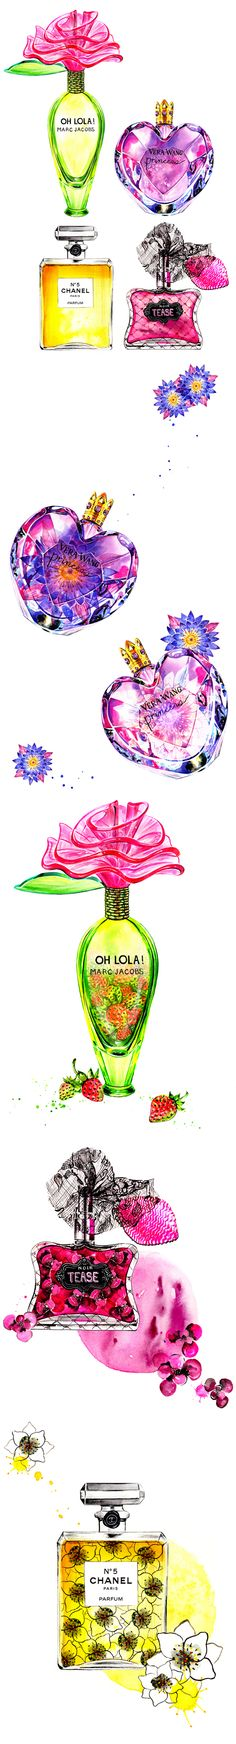 Perfume Obsession-Illustration by Sunny Gu #fashion #illustration #fashionillustration #perfume